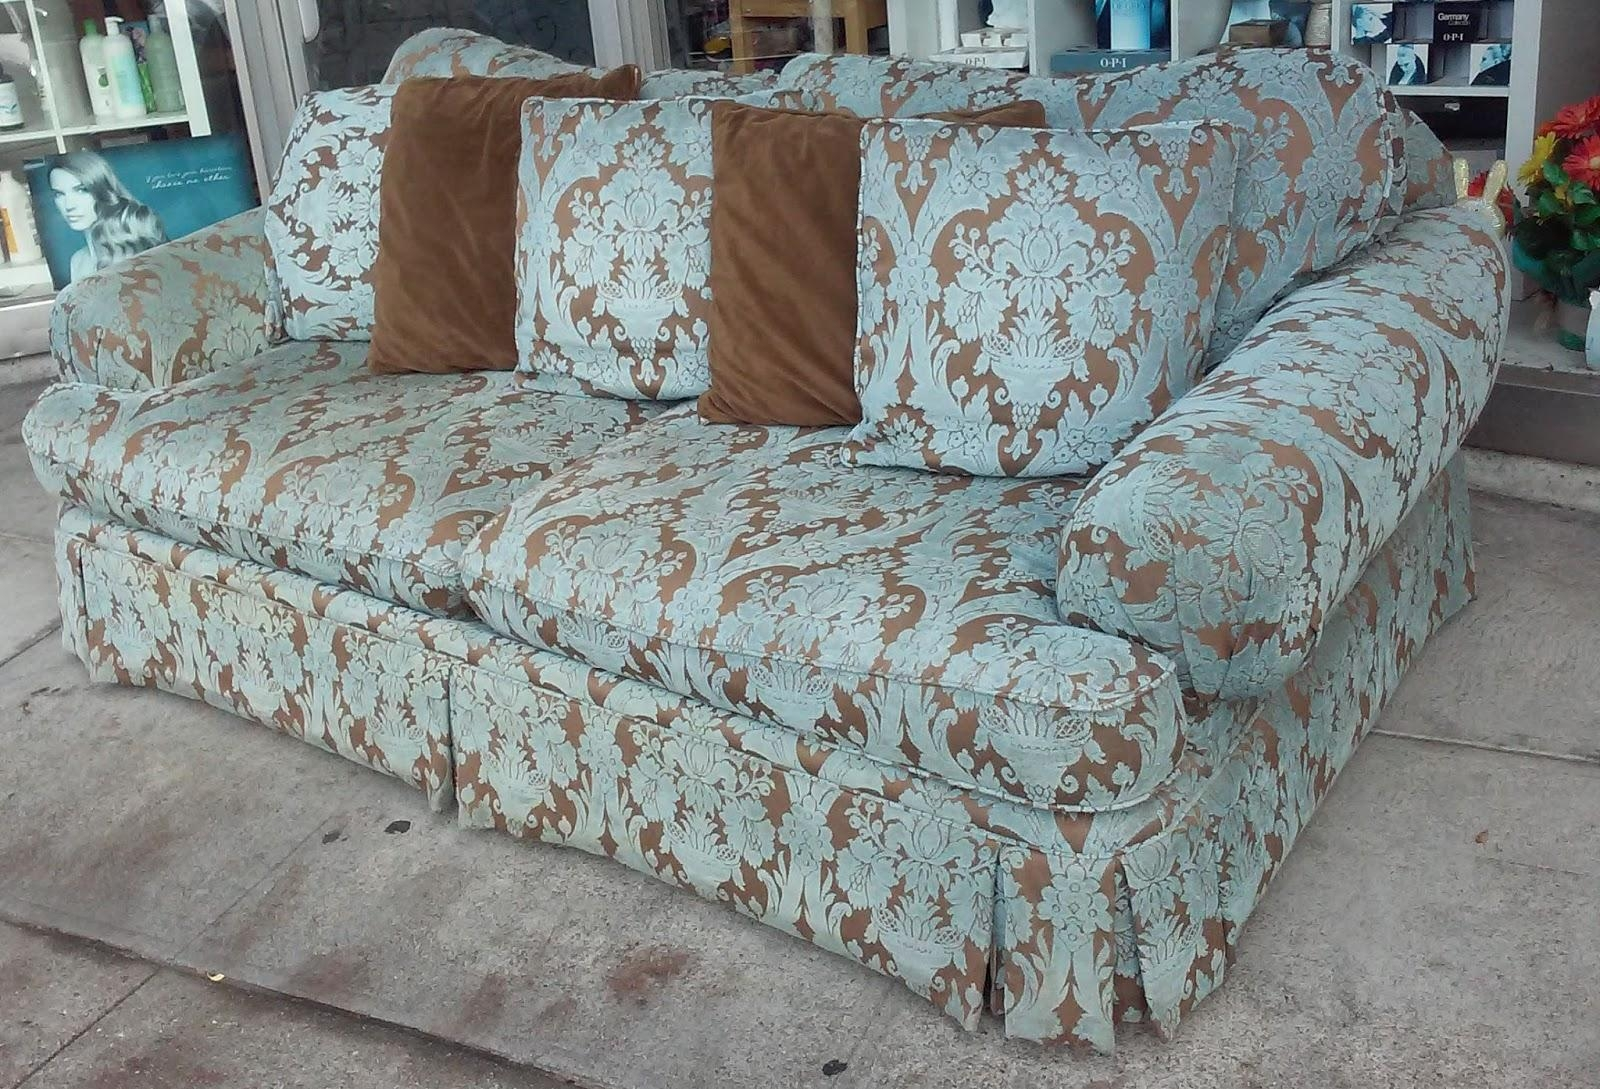 Uhuru Furniture & Collectibles: Sold **reduced** Blue Brocade Sofa Intended For Brocade Sofas (View 14 of 20)